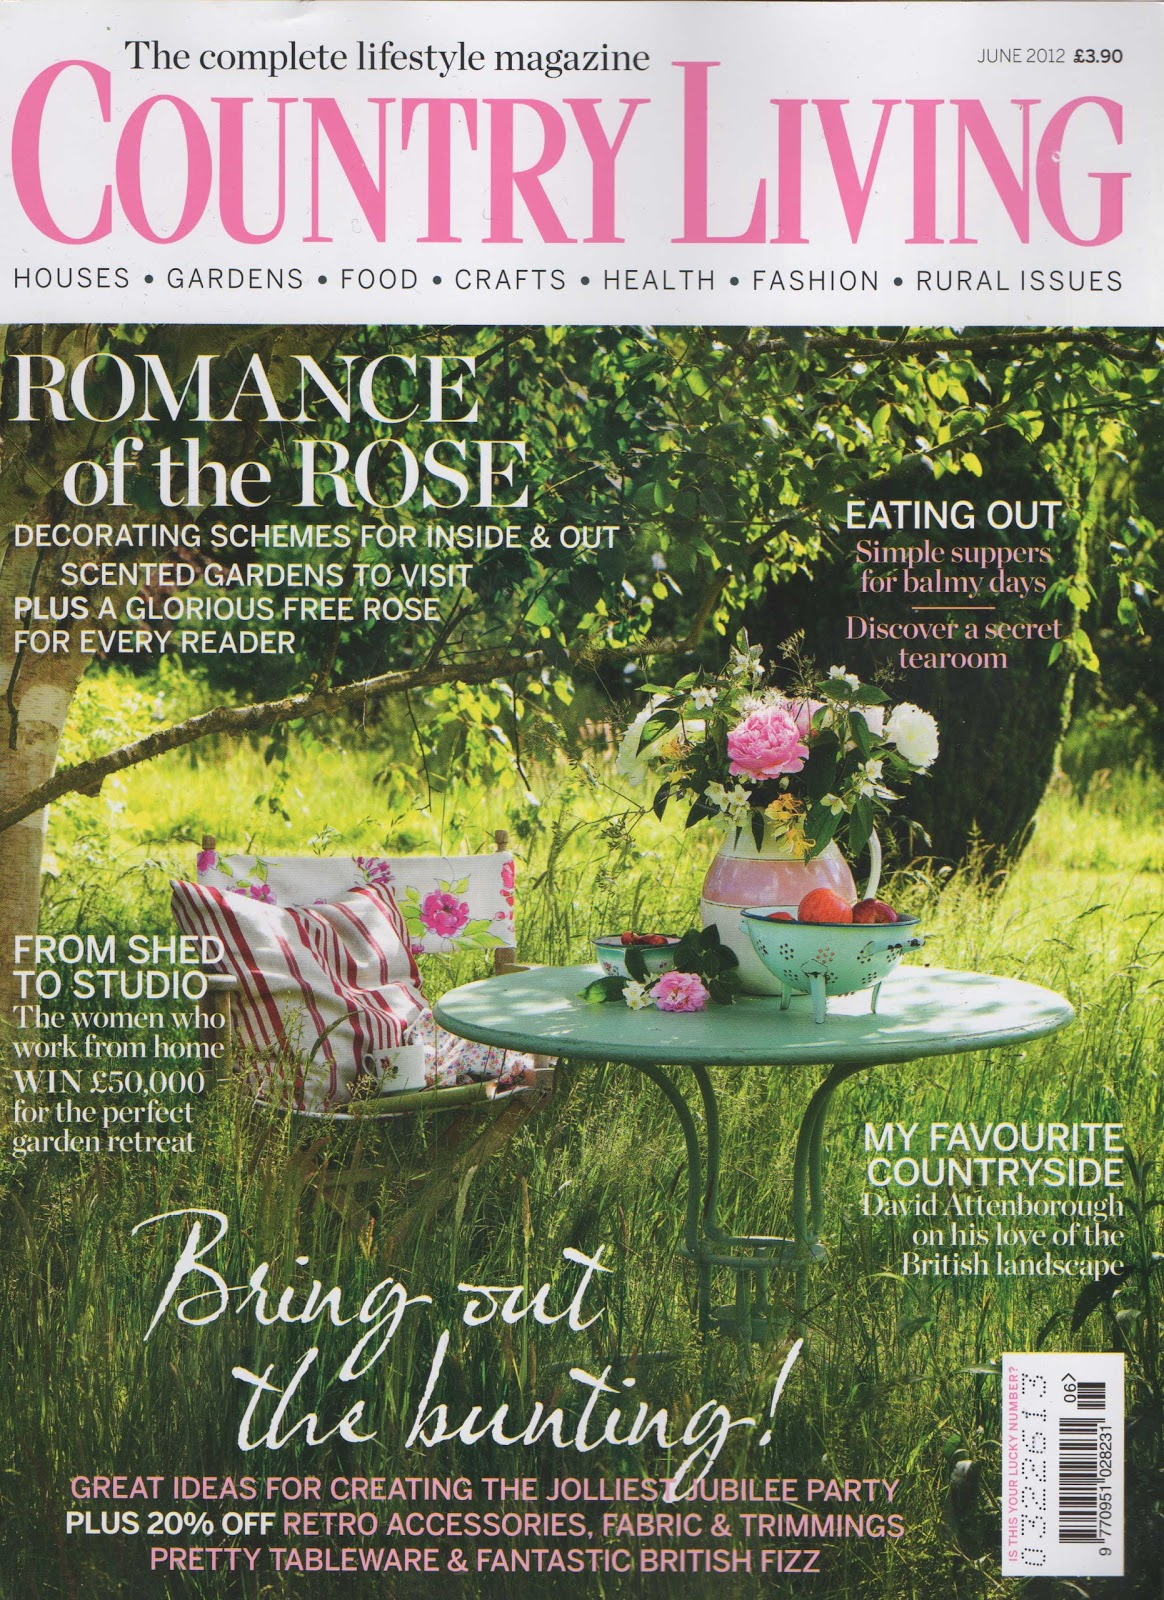 Etonnant Country Living Shoot. Blink And You Miss Us In The June Edition Of UK  Country Living.